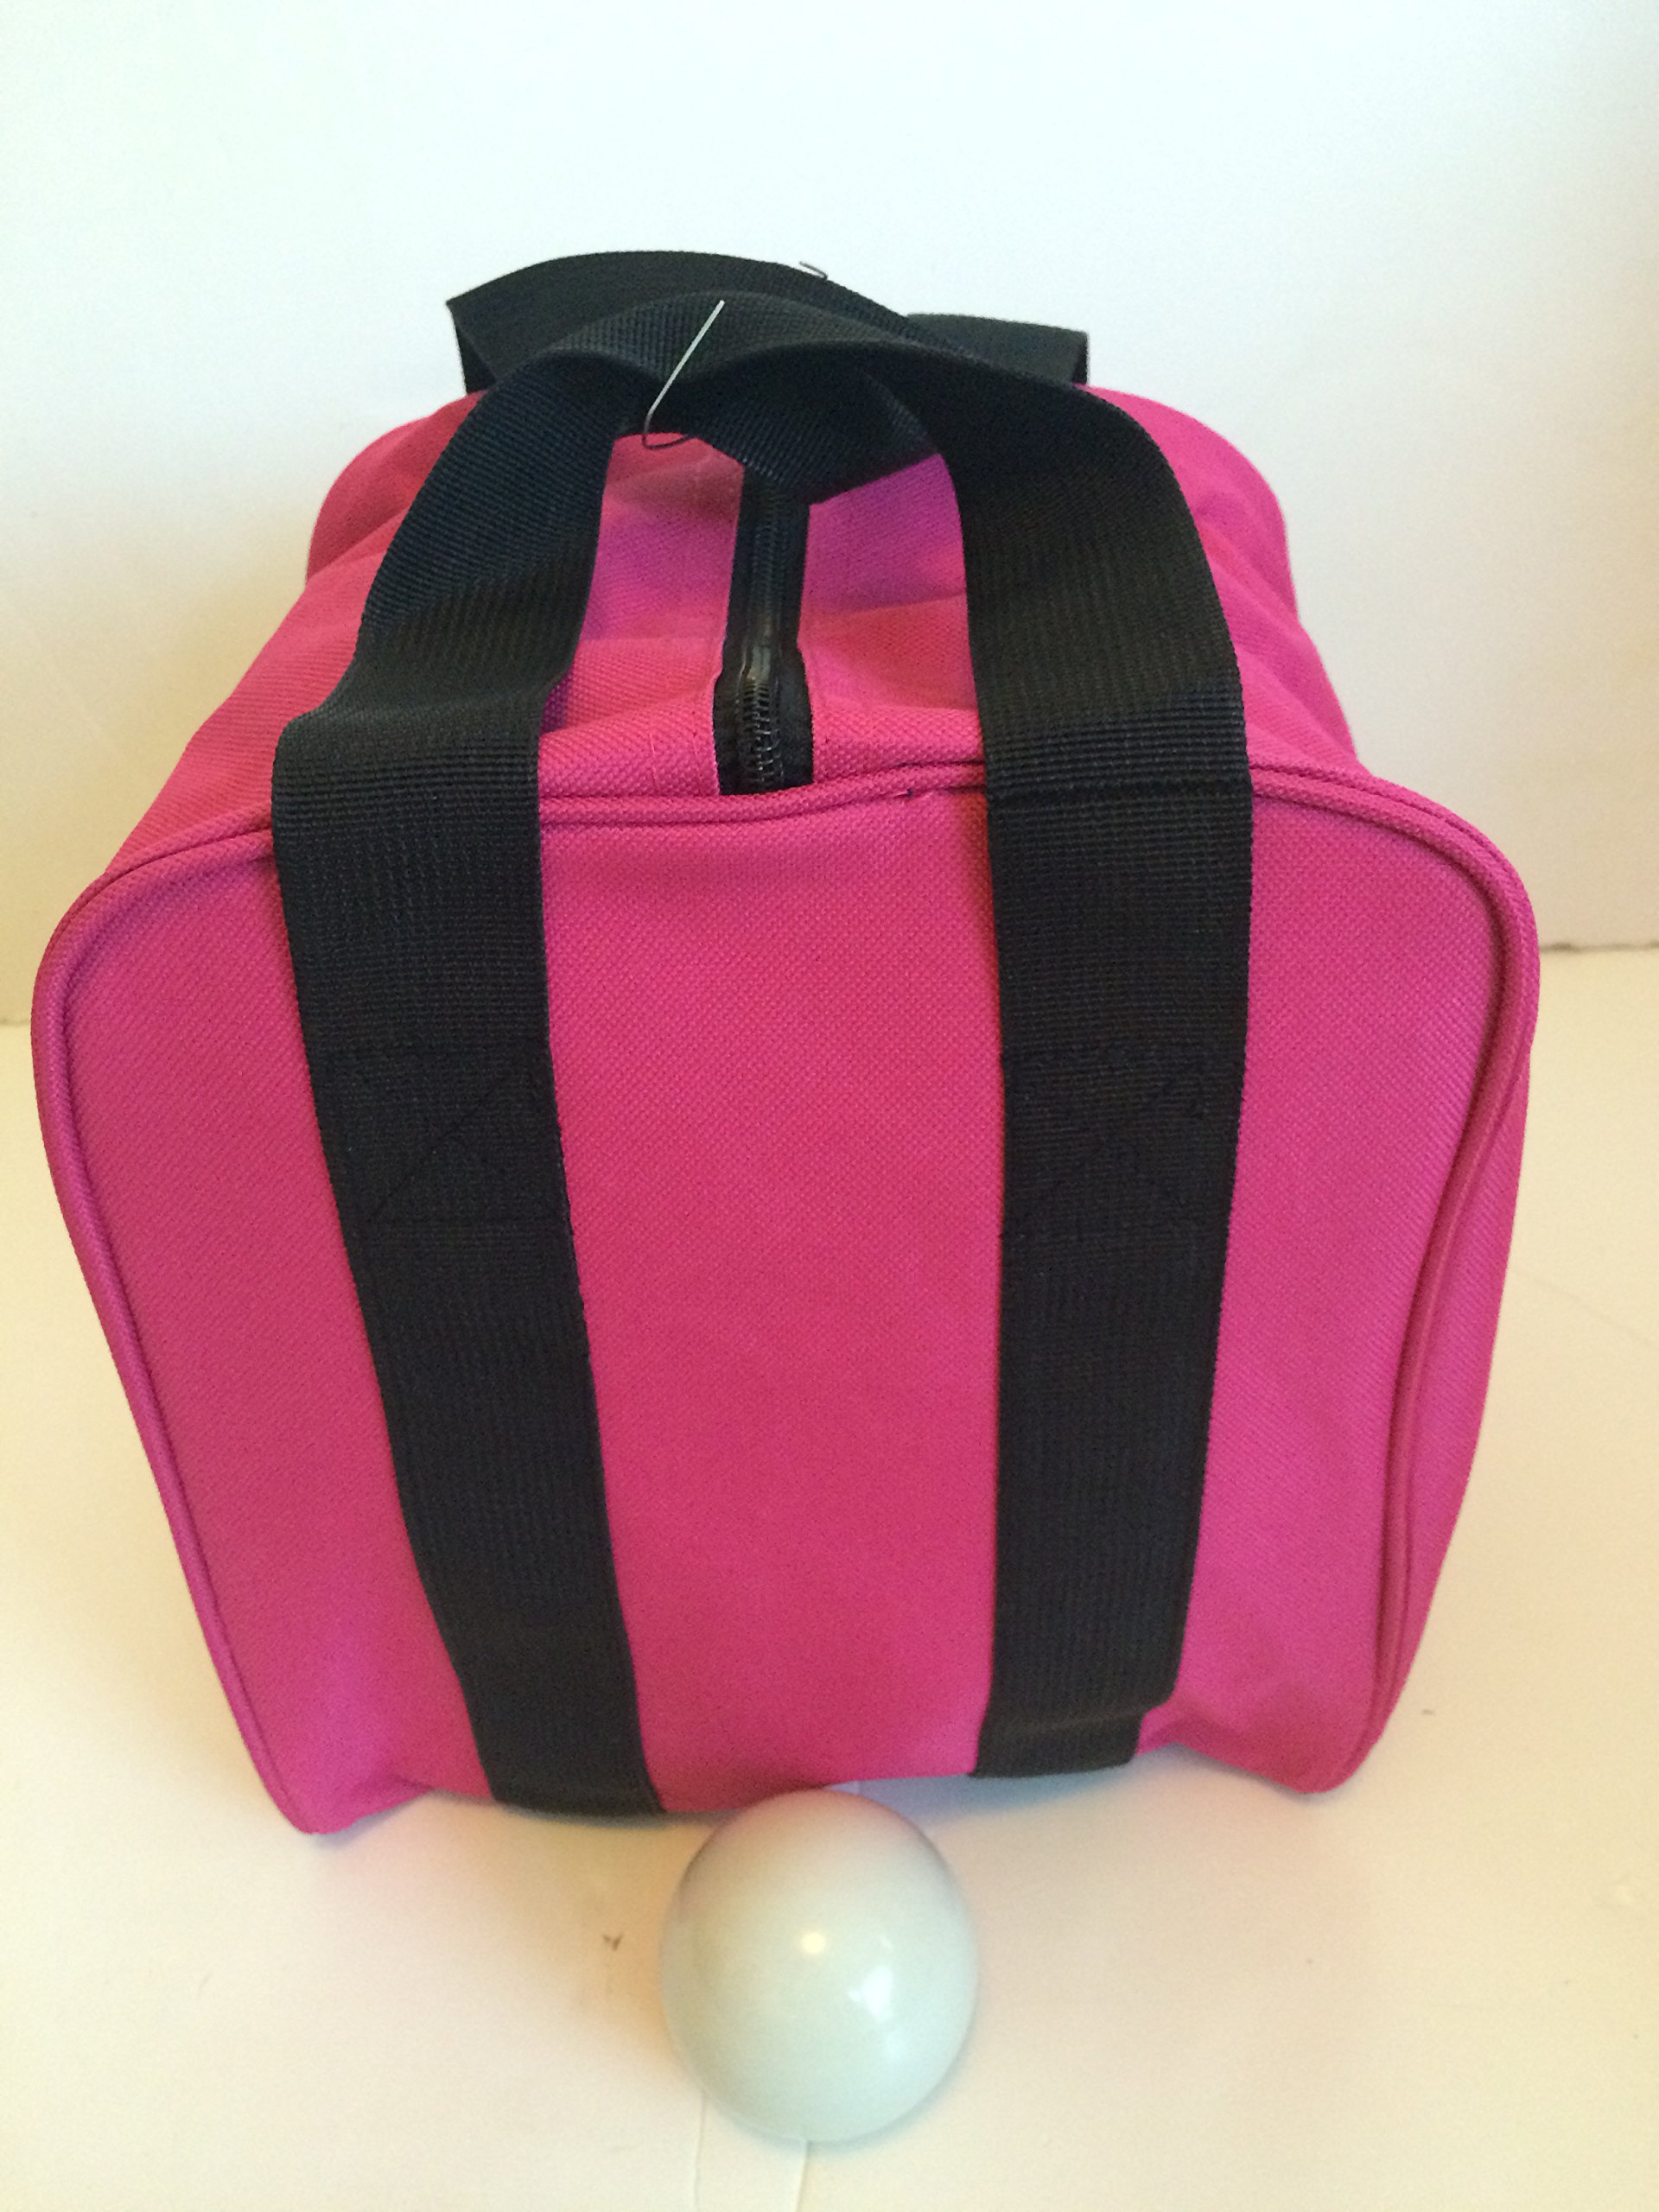 Unique Bocce Accessories Package - Extra Heavy Duty Nylon Bocce Bag (Pink with Black Handles) and White pallina